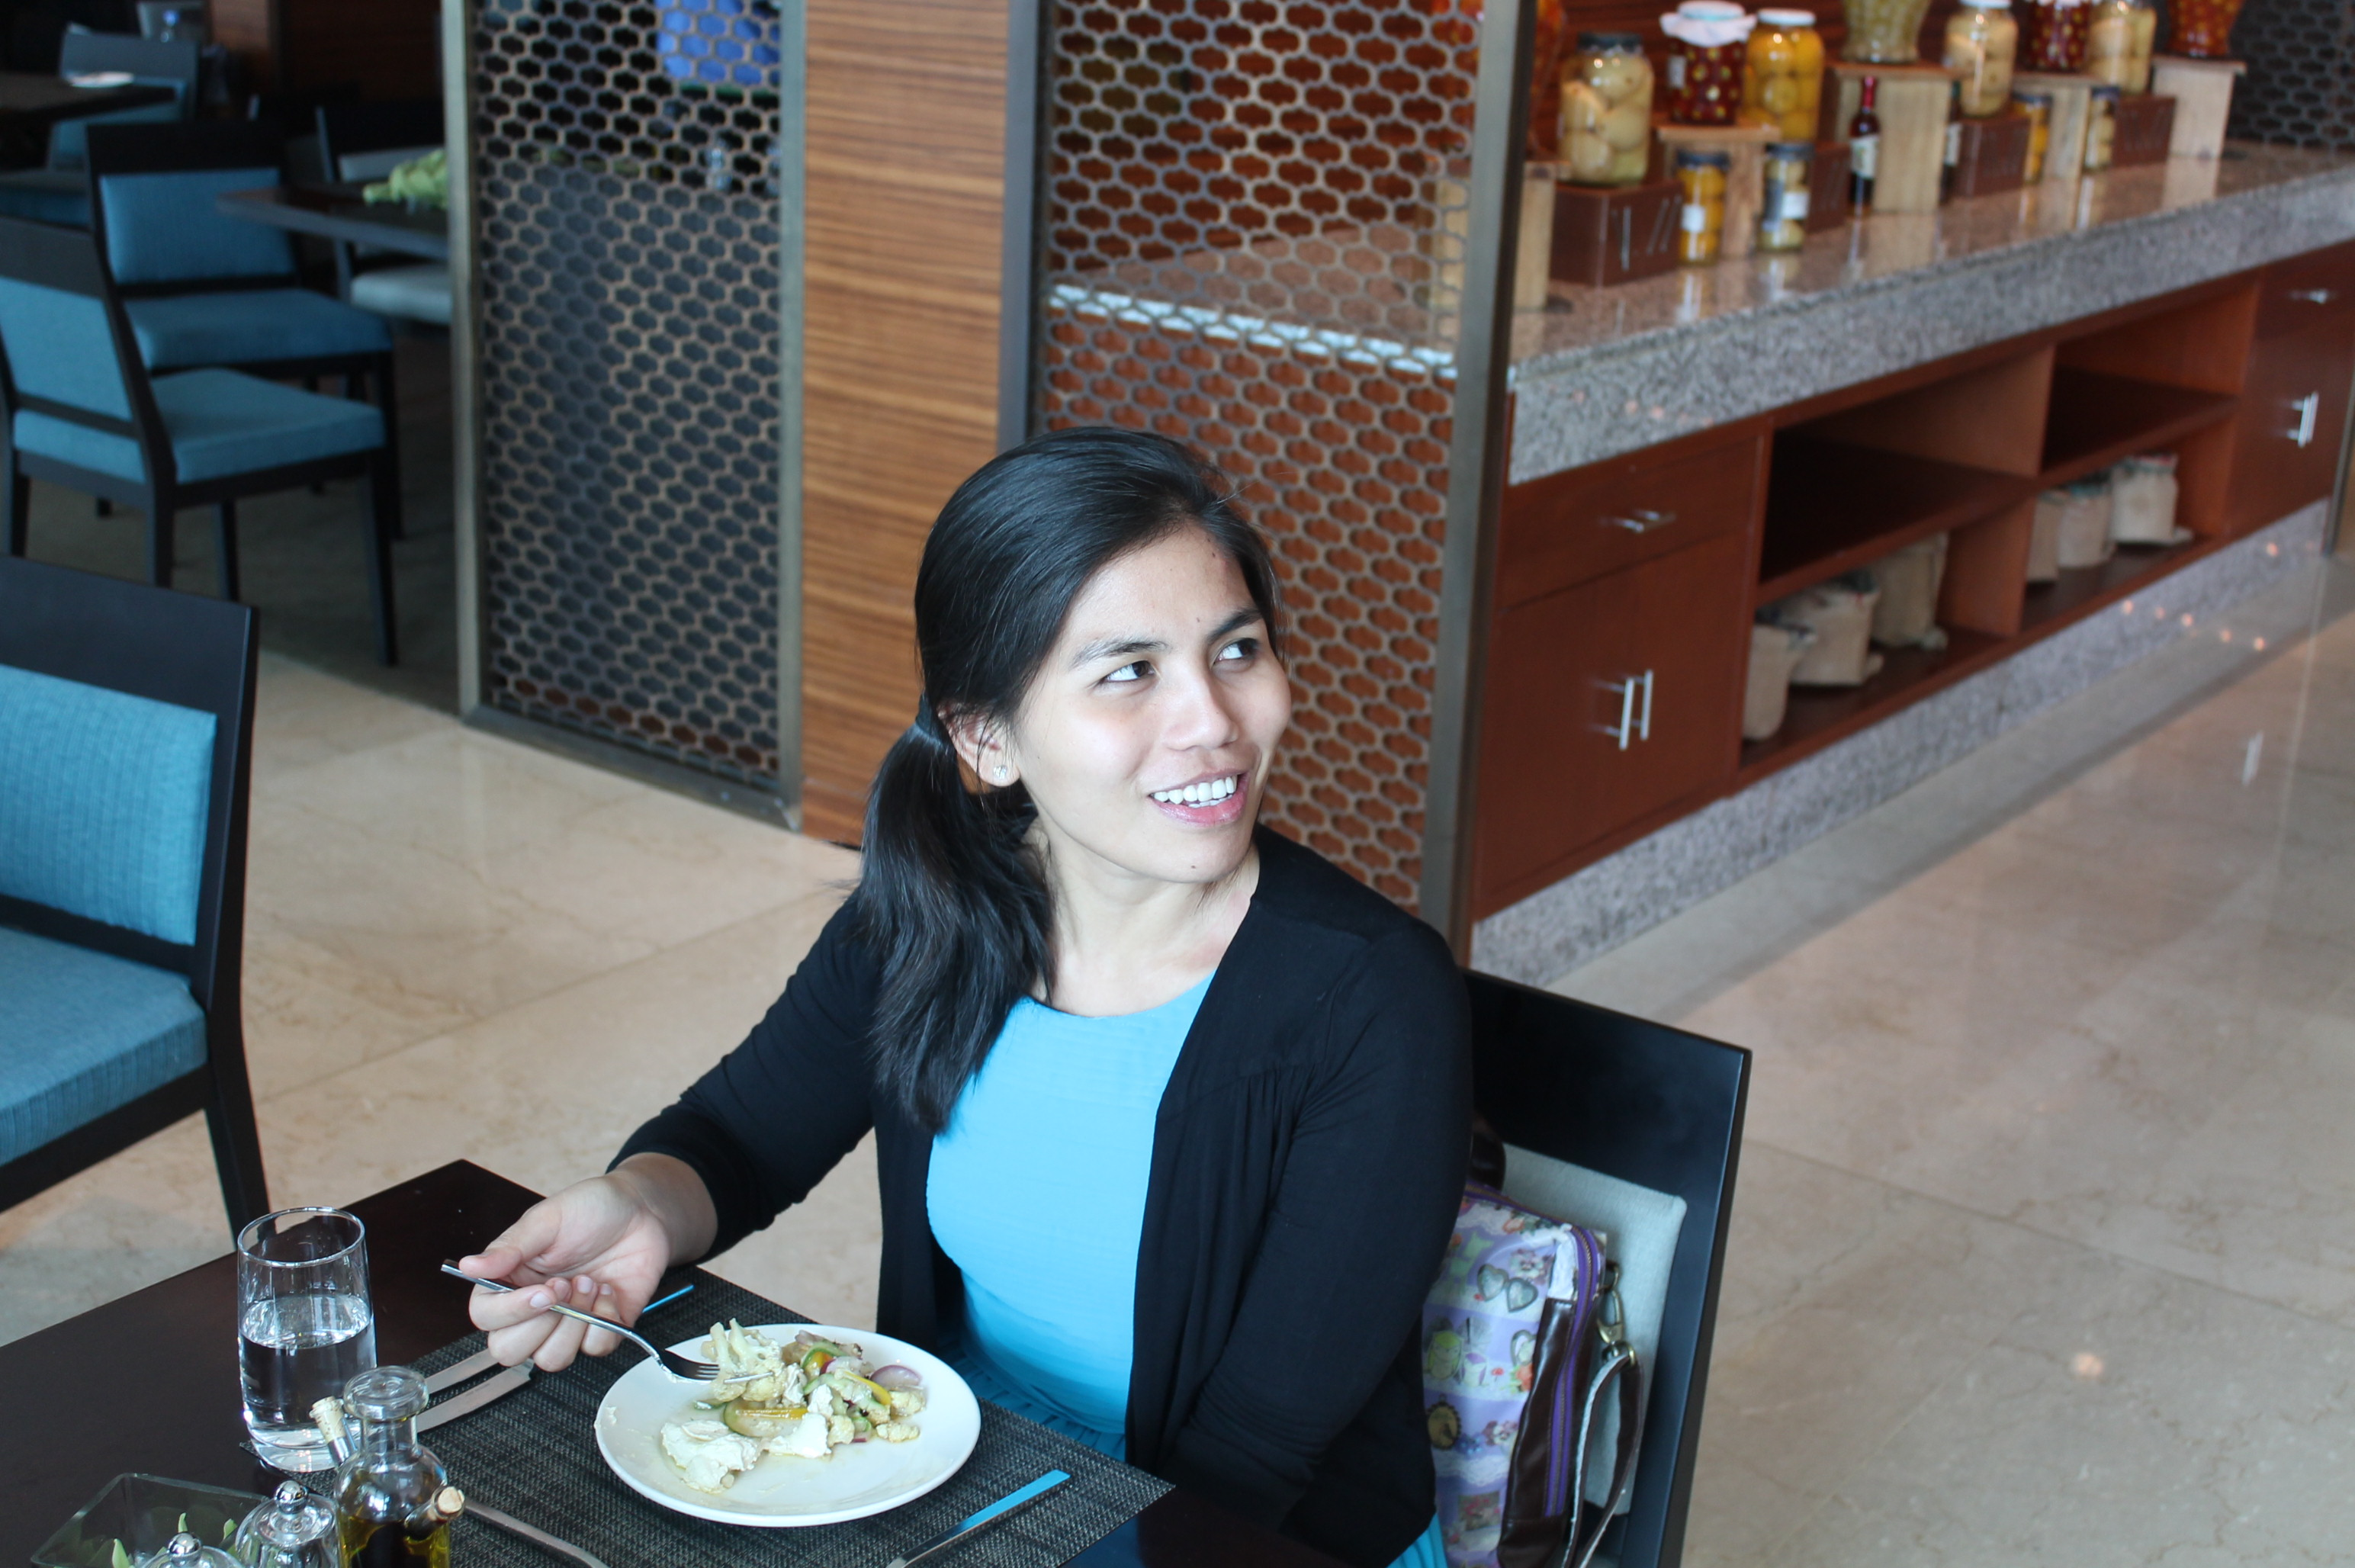 Foodie at Intercontinental Hotel